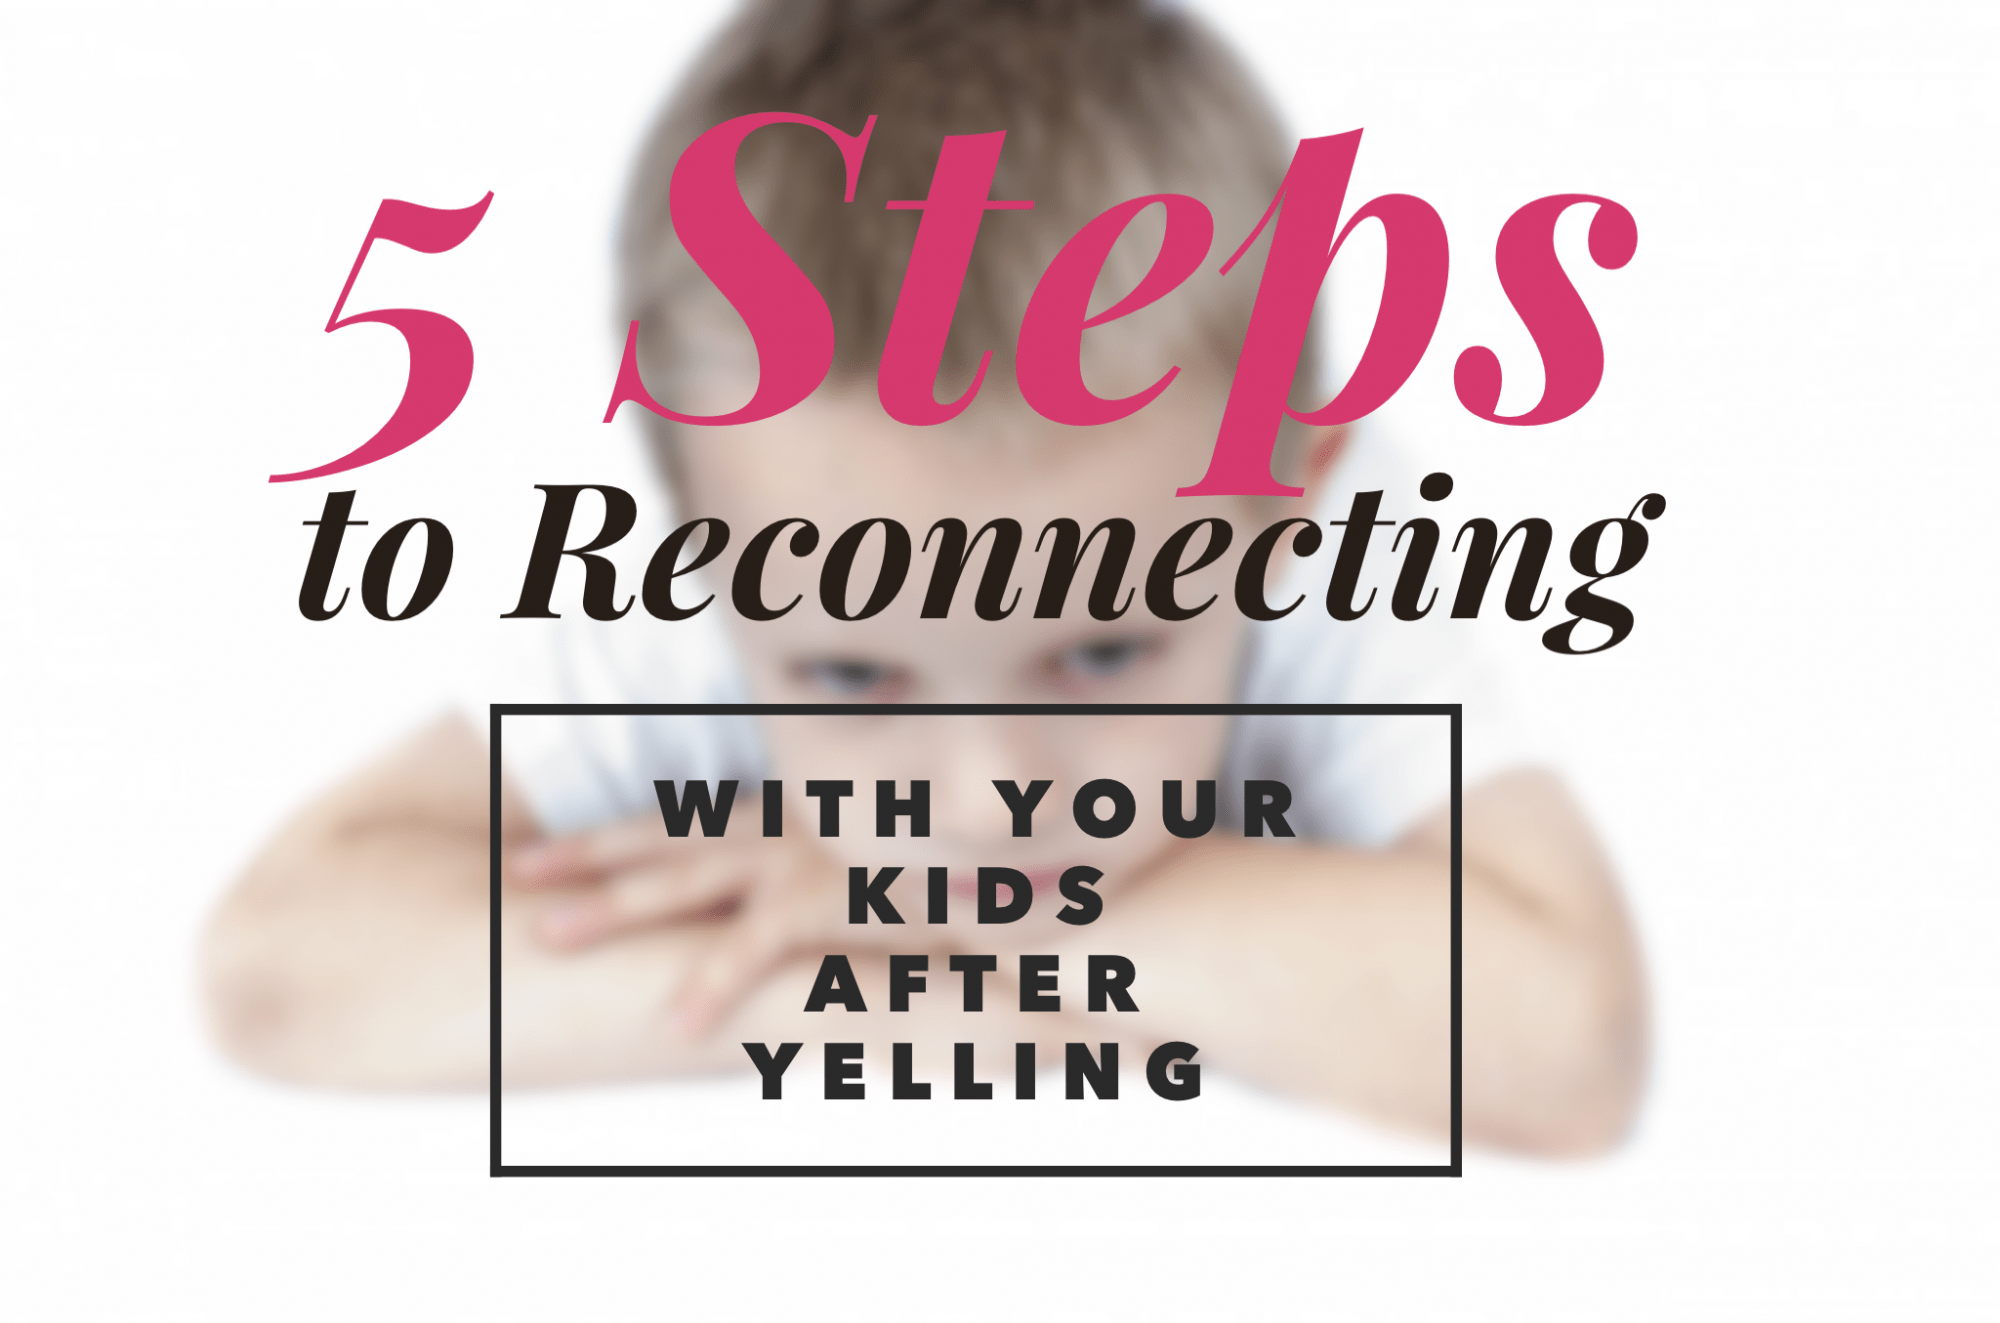 5 Steps to Reconnecting with Your Kids After Yelling